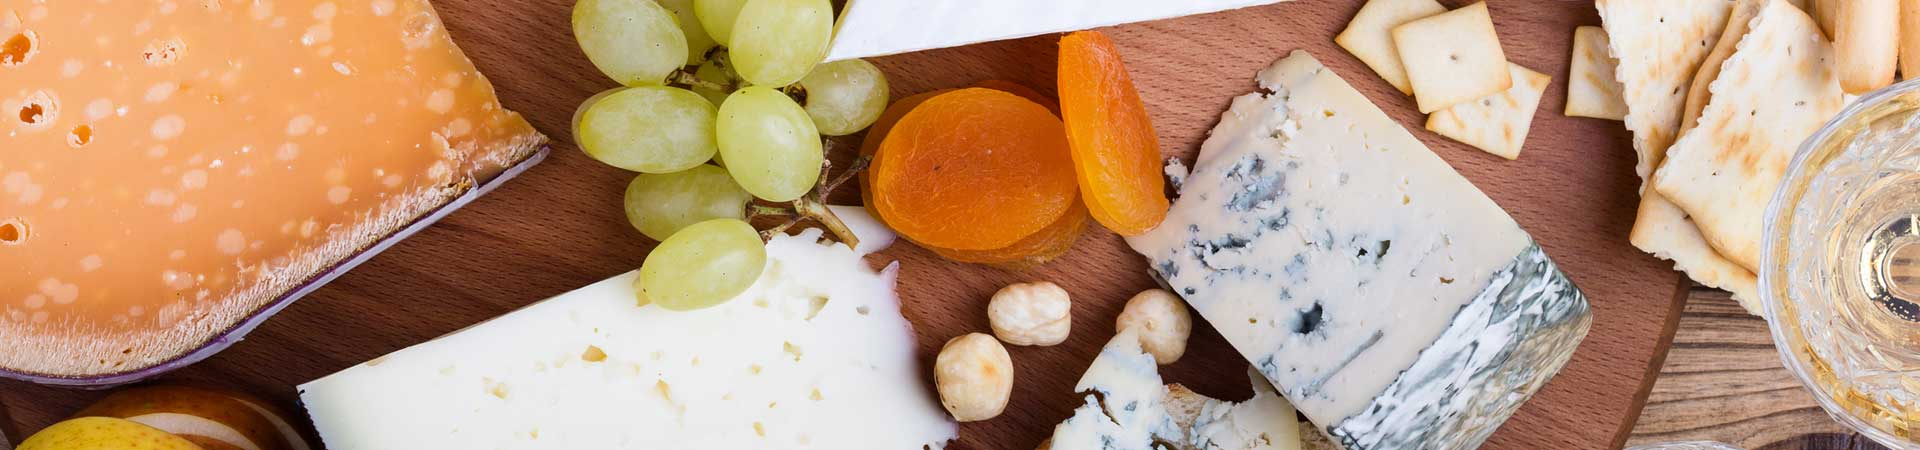 Cheese tray with wine and grapes